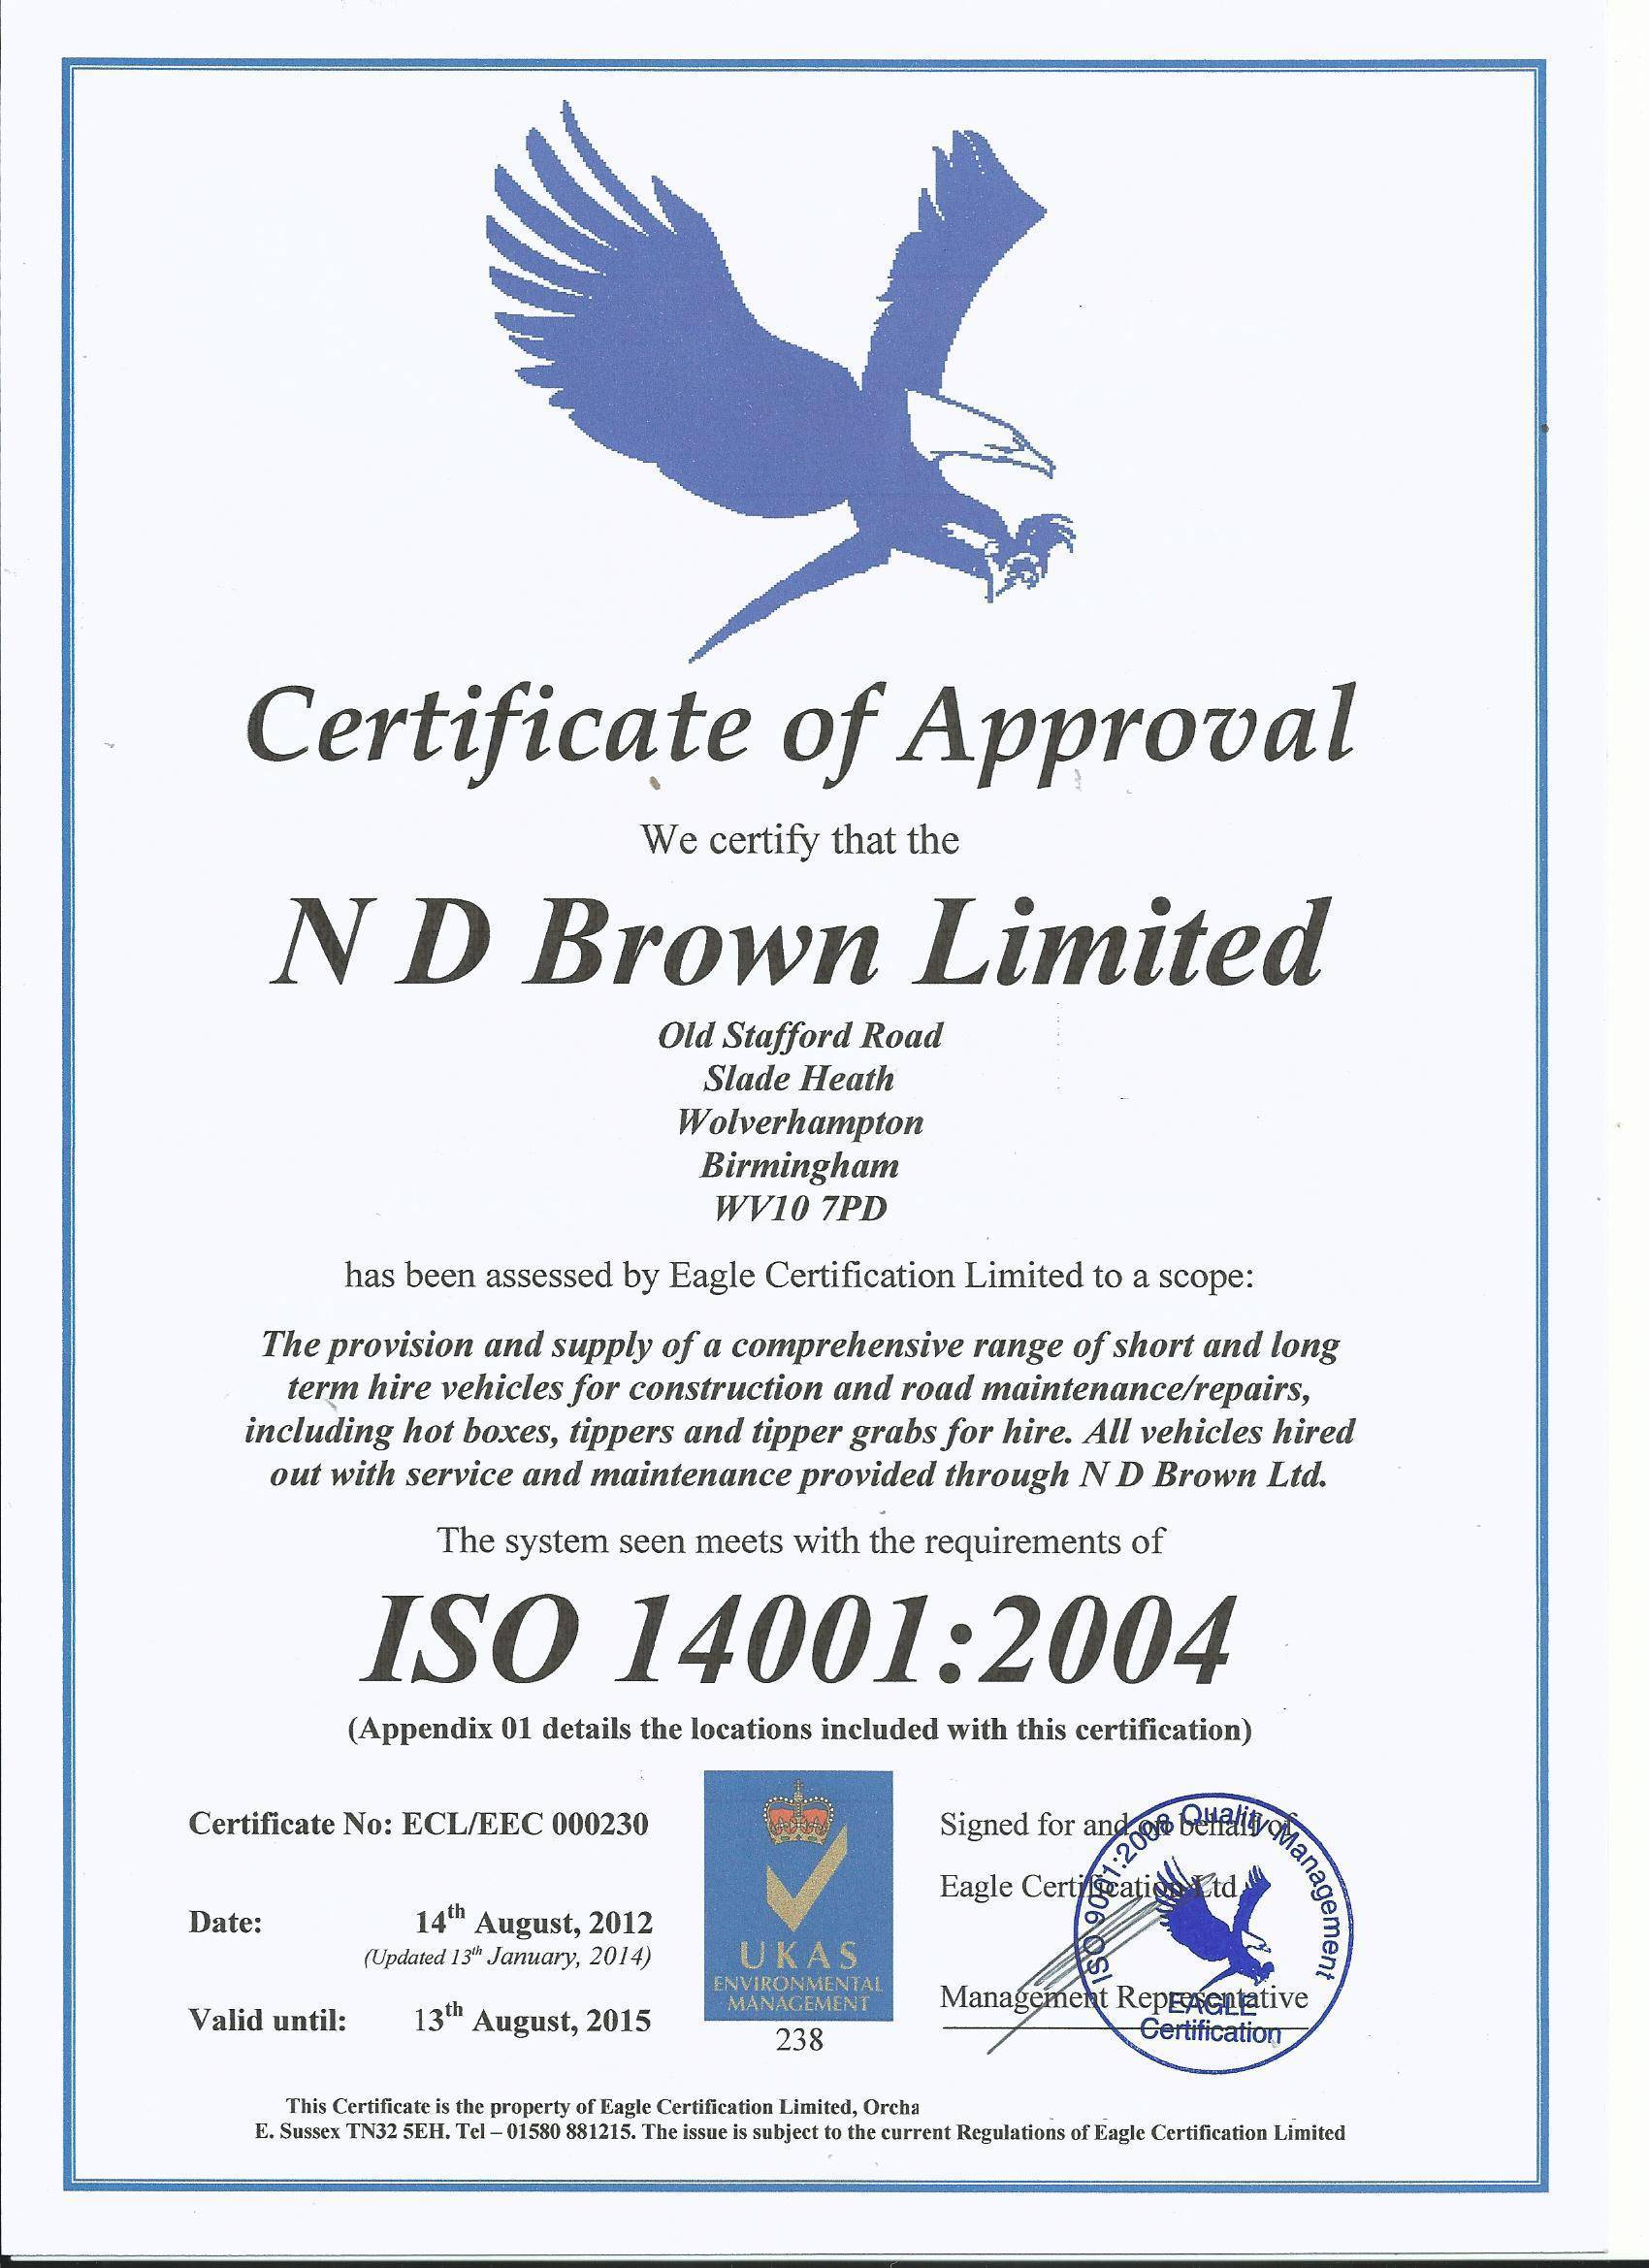 ISO 14001:2001 Accreditation Certificate for ND Brown